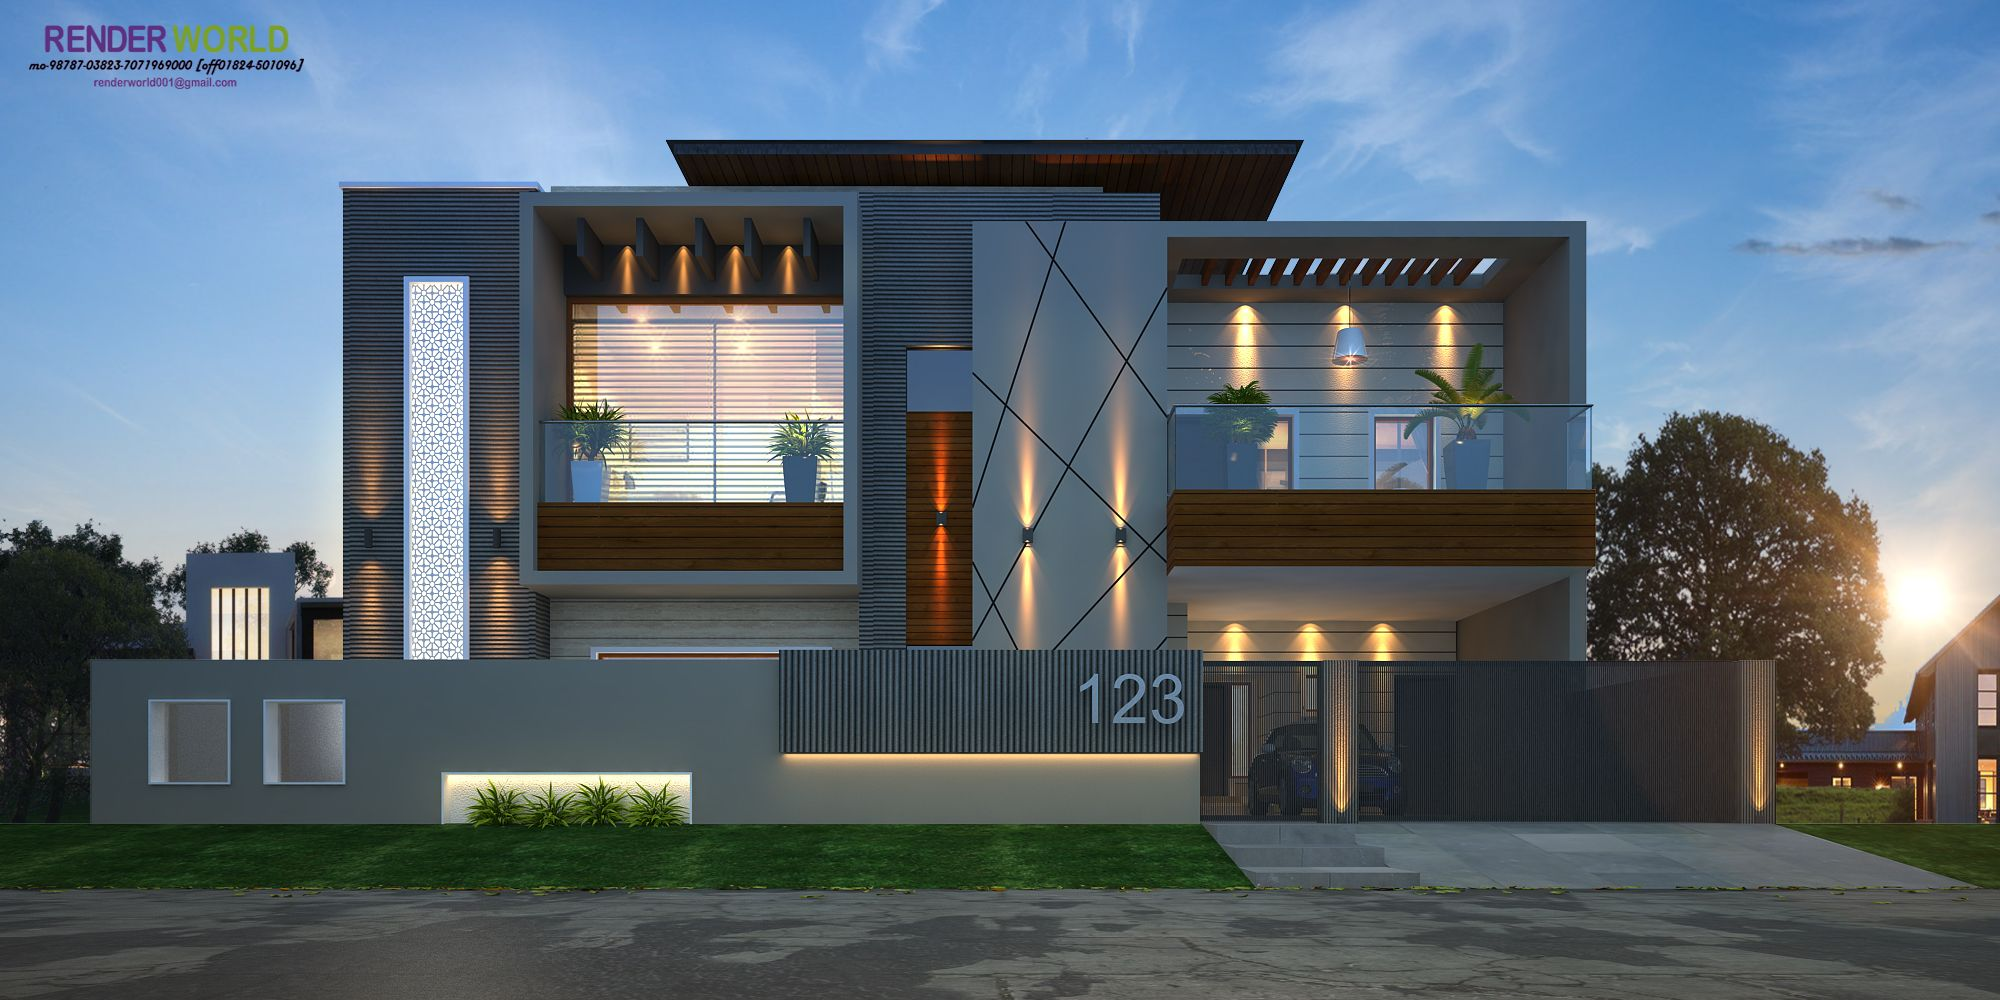 Front Elevation Gate Design : Modern elevation rendring render world house